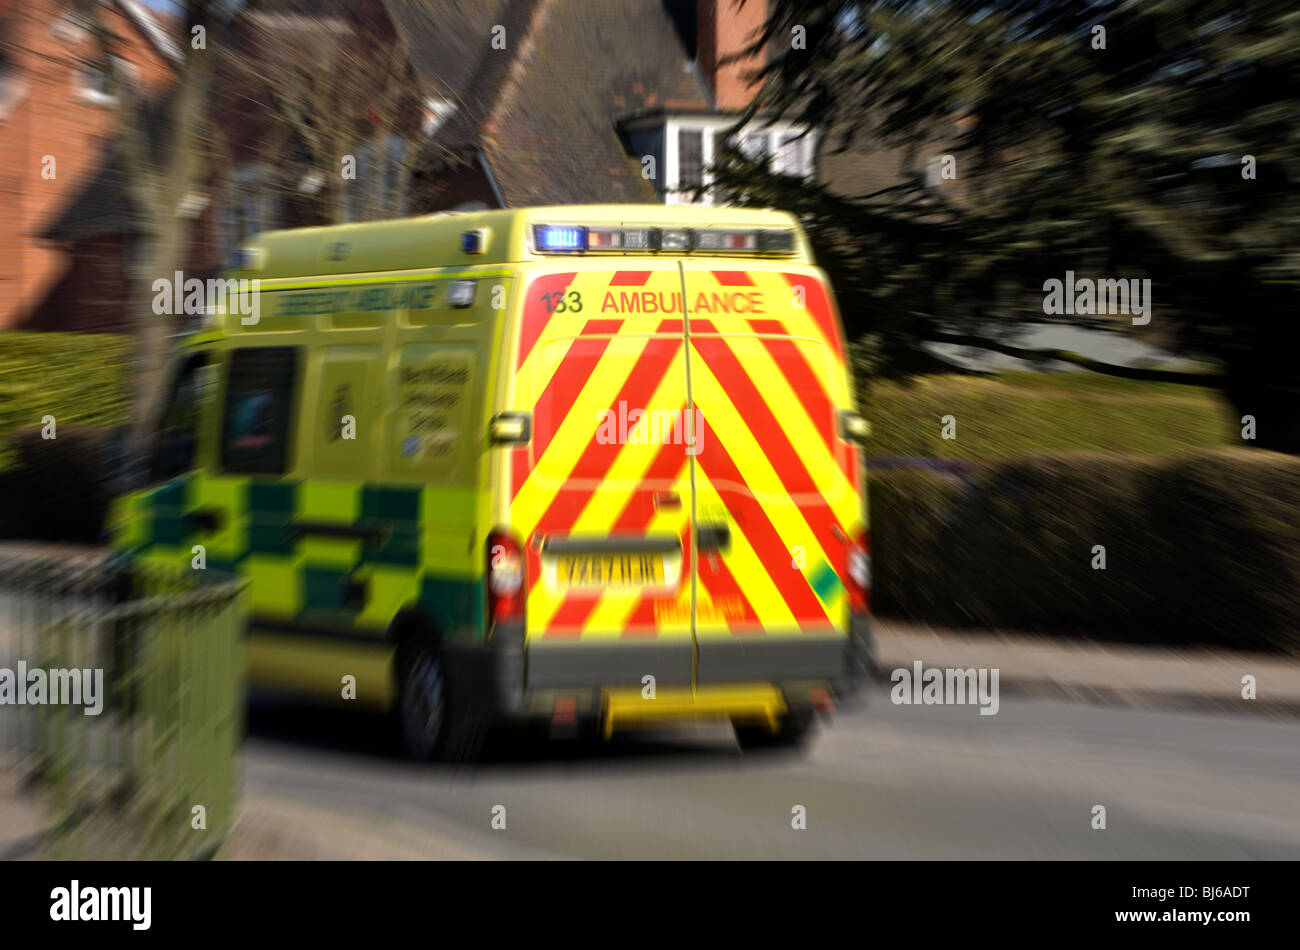 An ambulance going away with blur, UK - Stock Image